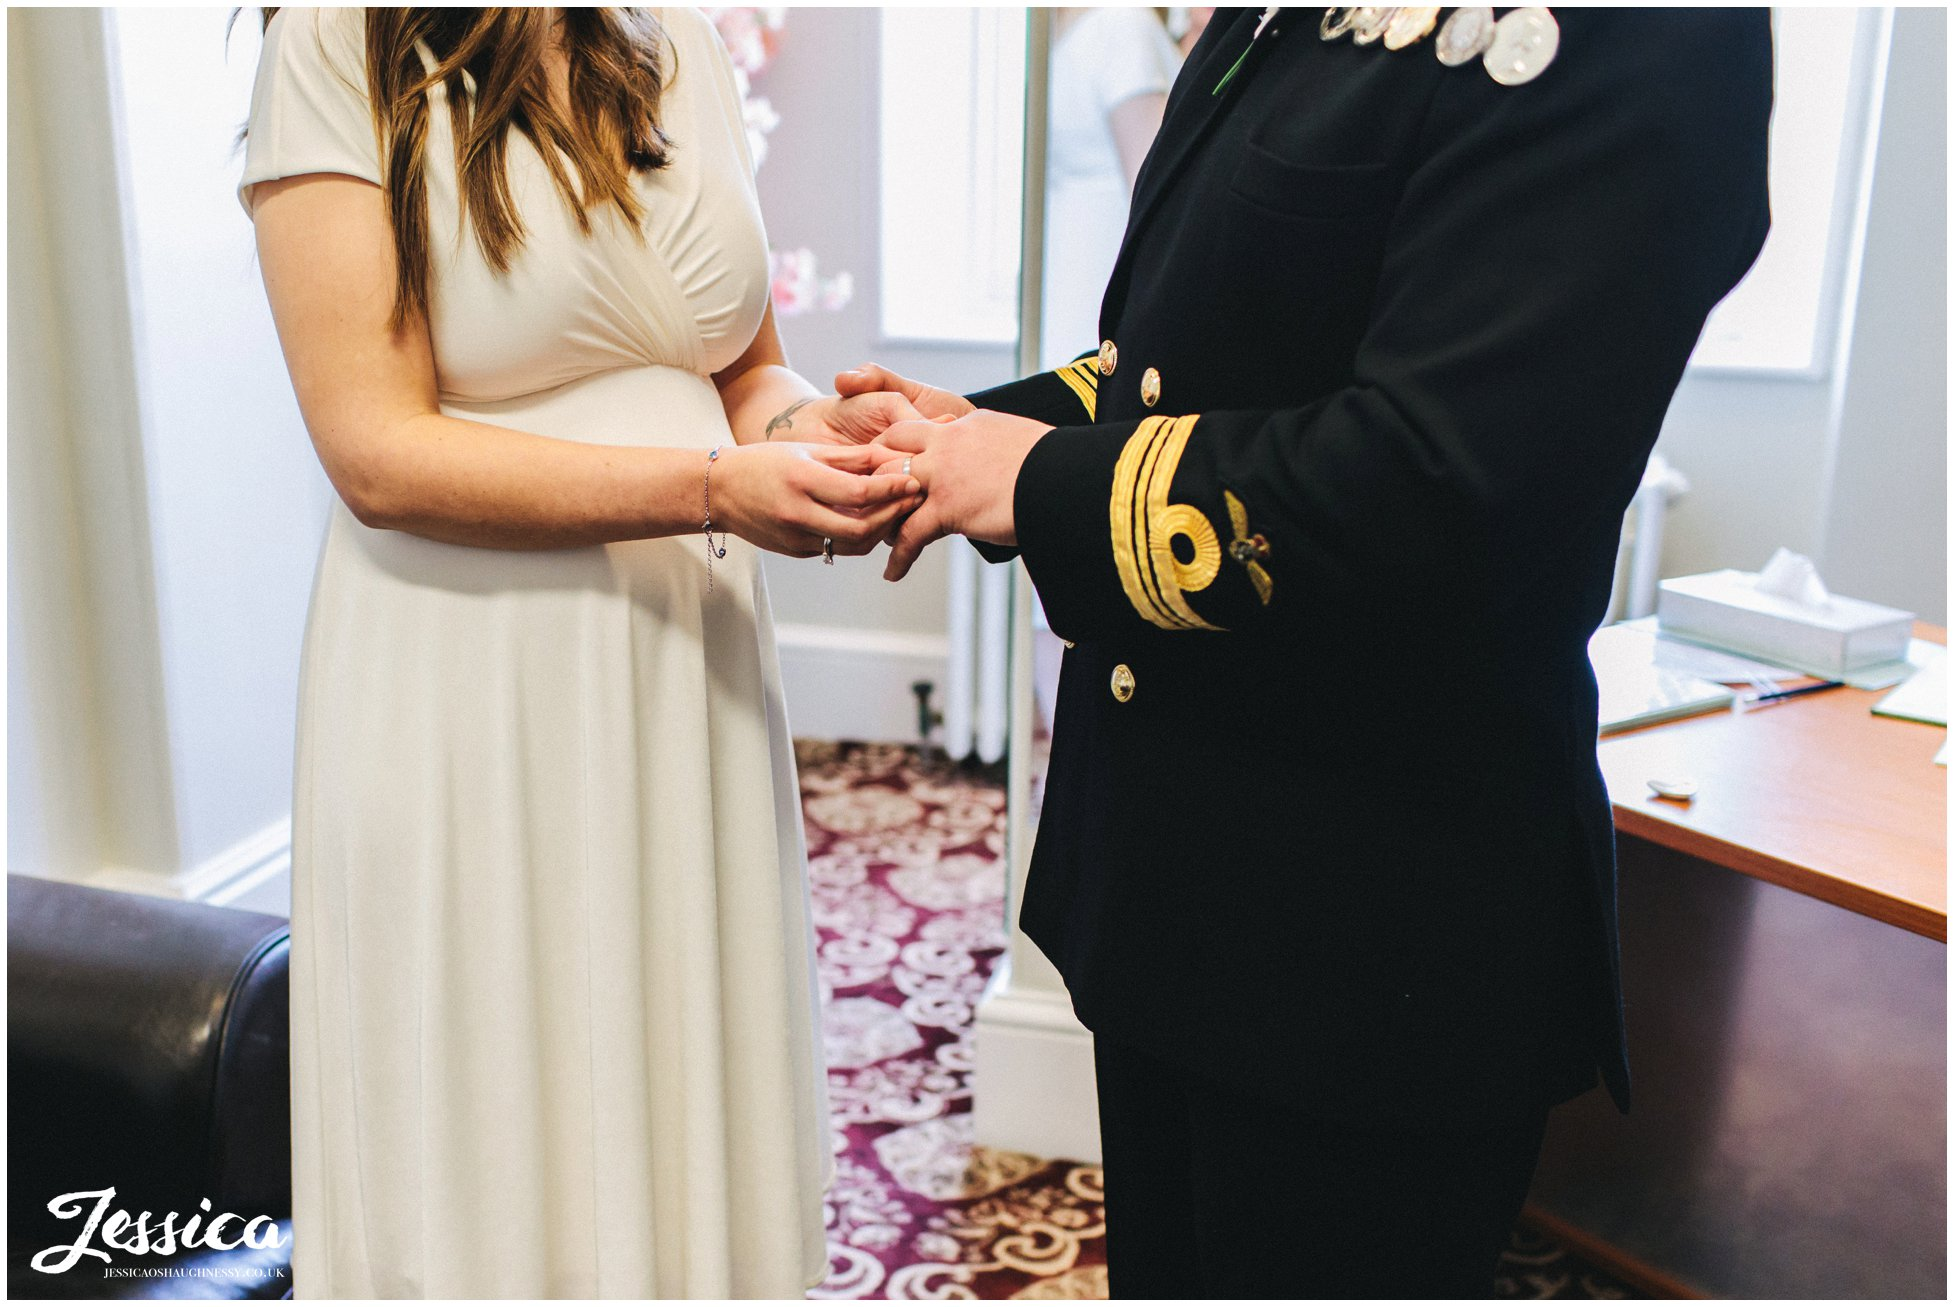 the bride places the ring on the grooms finger